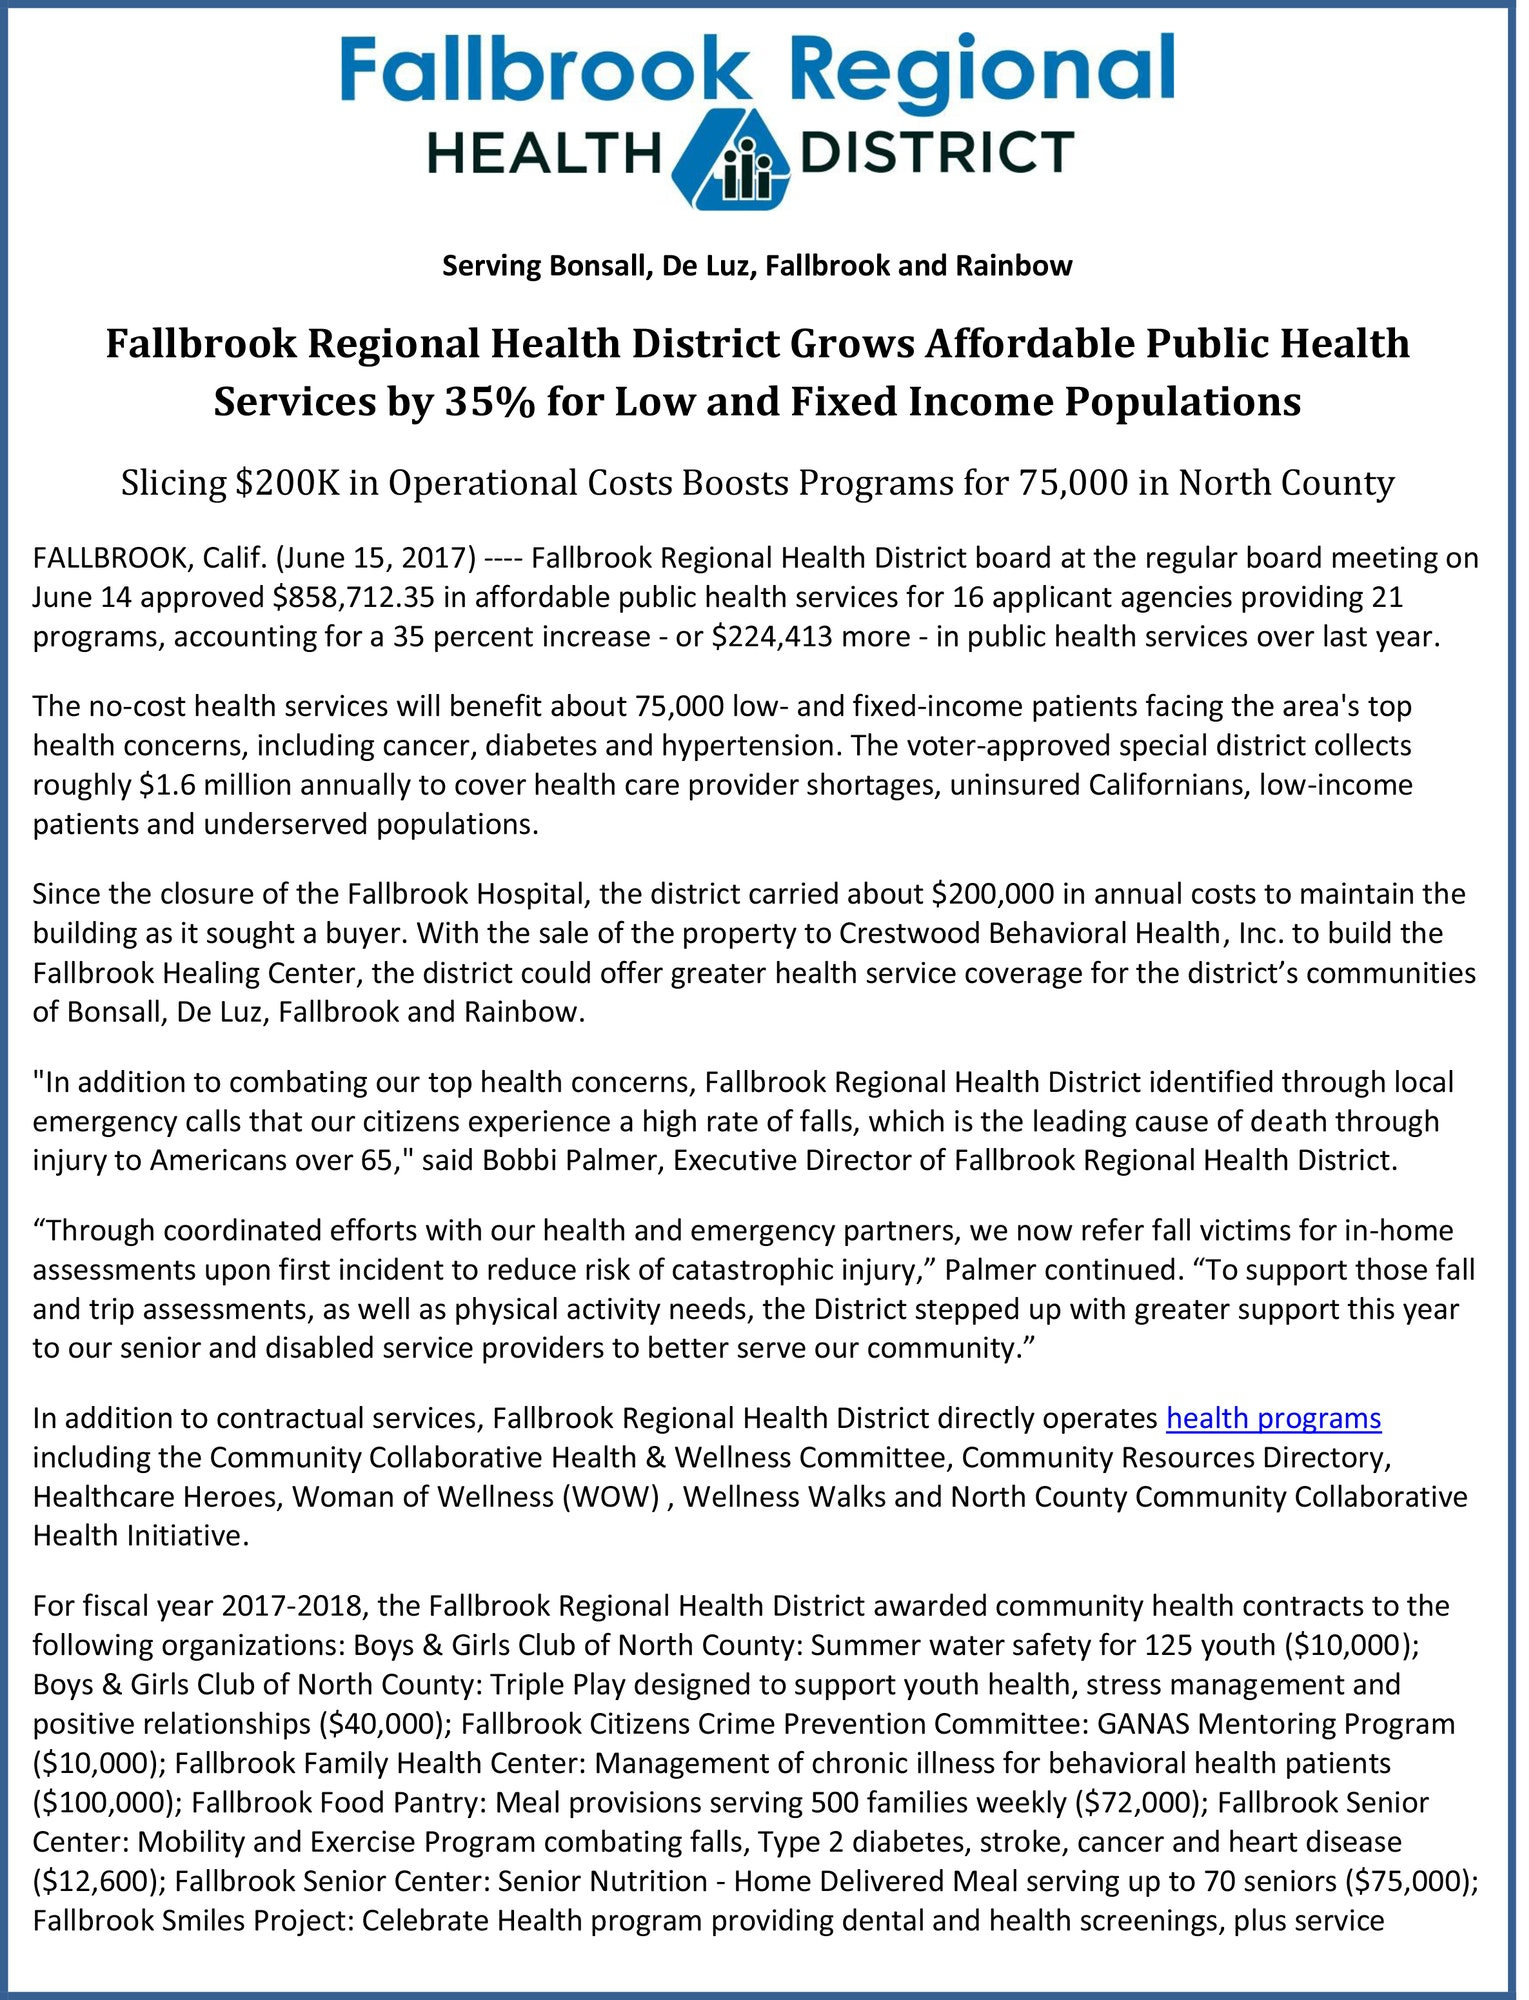 Press releases fallbrook regional health district press release 06 15 2017 fallbrook regional health district grows affordablepdf fandeluxe Images